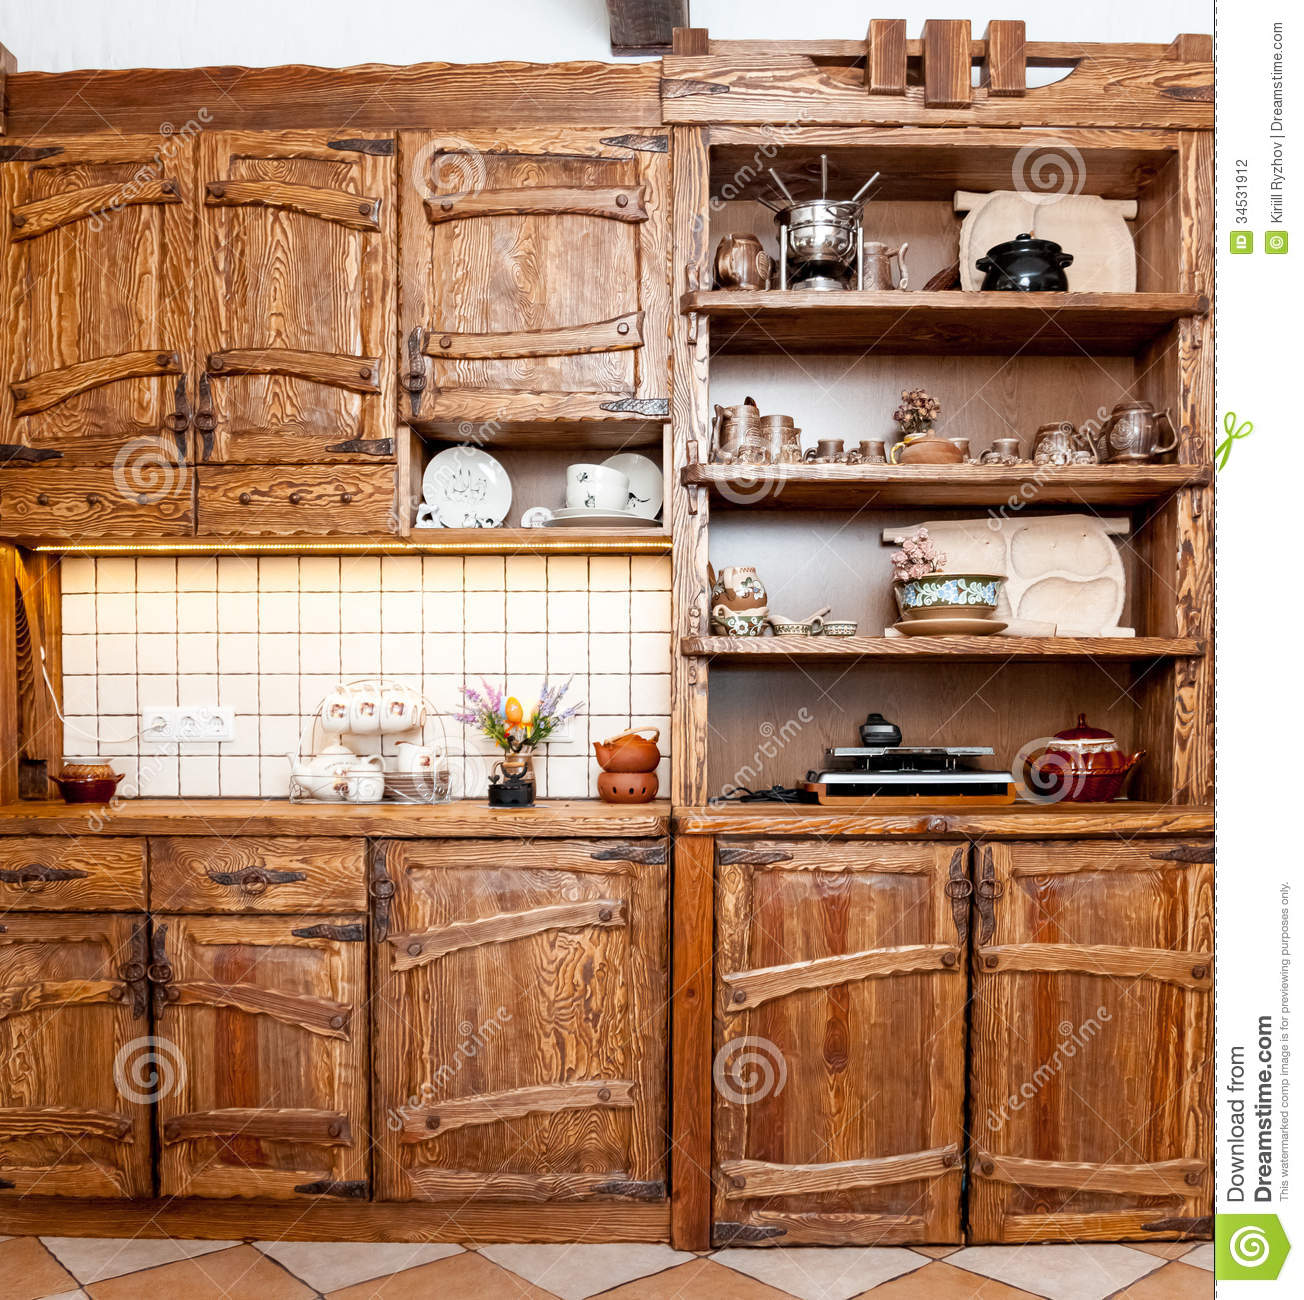 Furniture For Kitchen In Country Style Stock Photography - Image ...